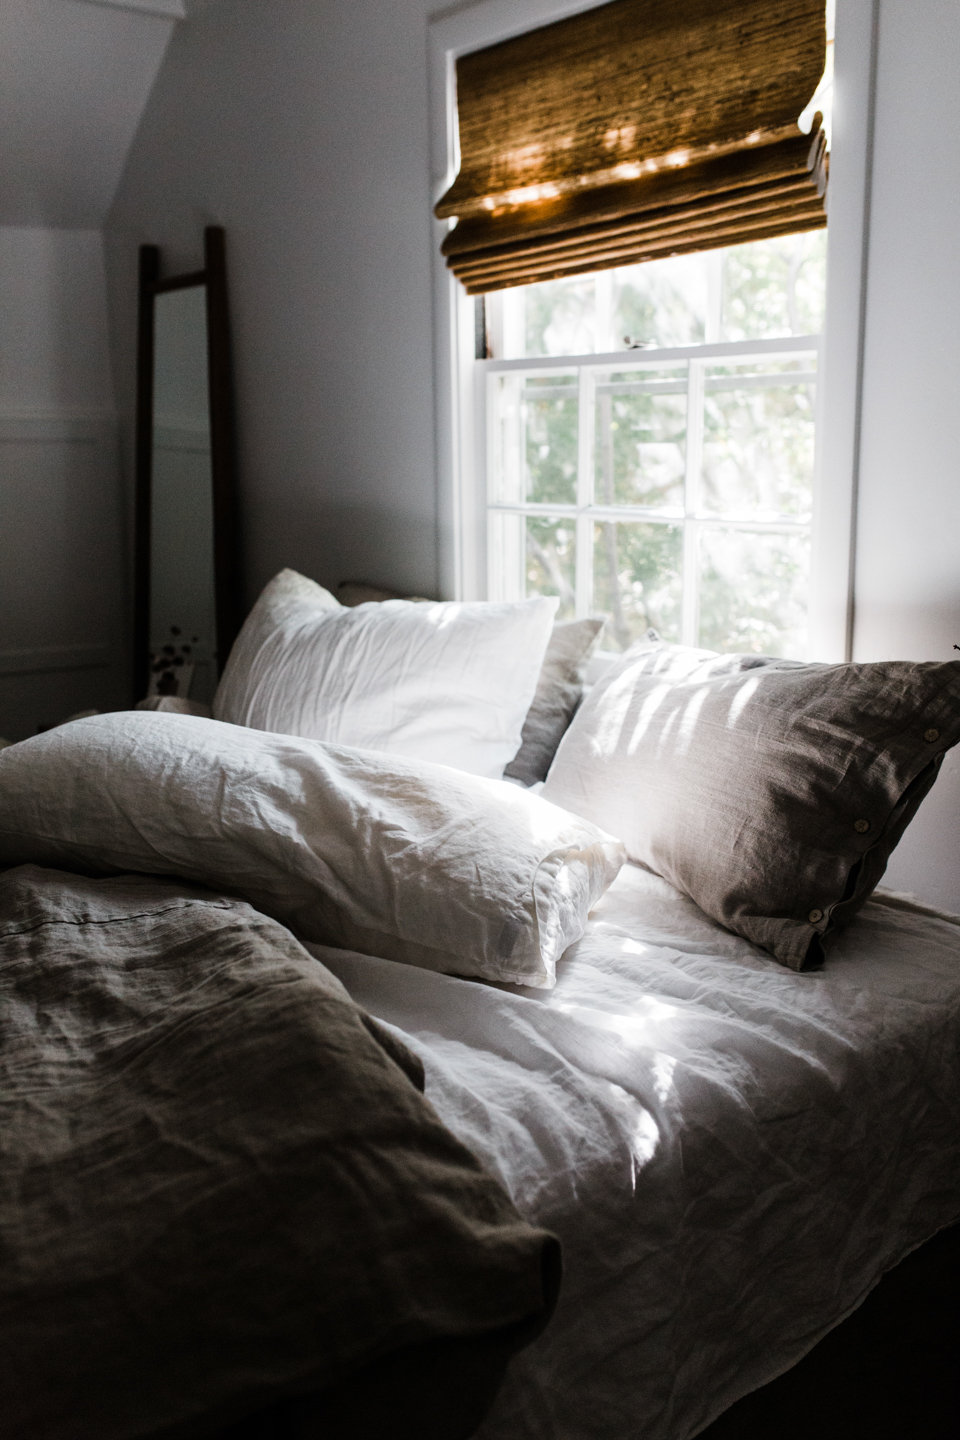 Linen Bedding Worth Splurging On - Cheetah is the New Black